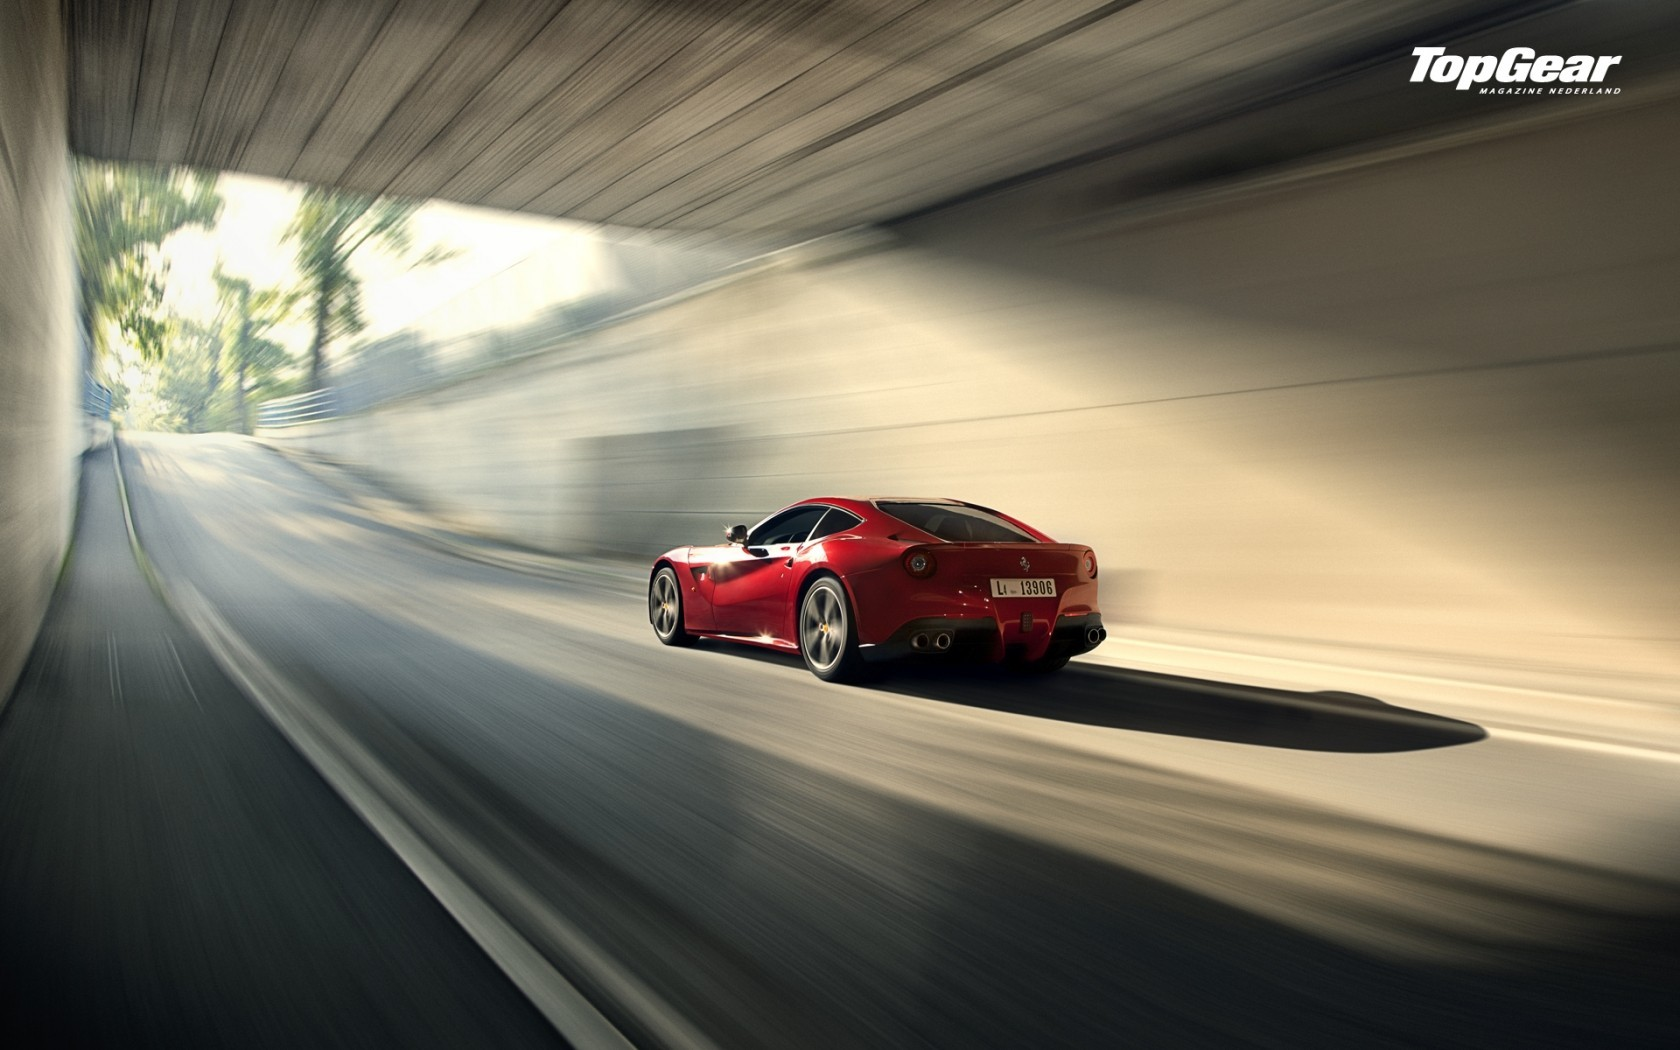 Car 5760x1080 Wallpaper Ferrari F12 Berlinetta Top Gear Wallpapers Hd Desktop